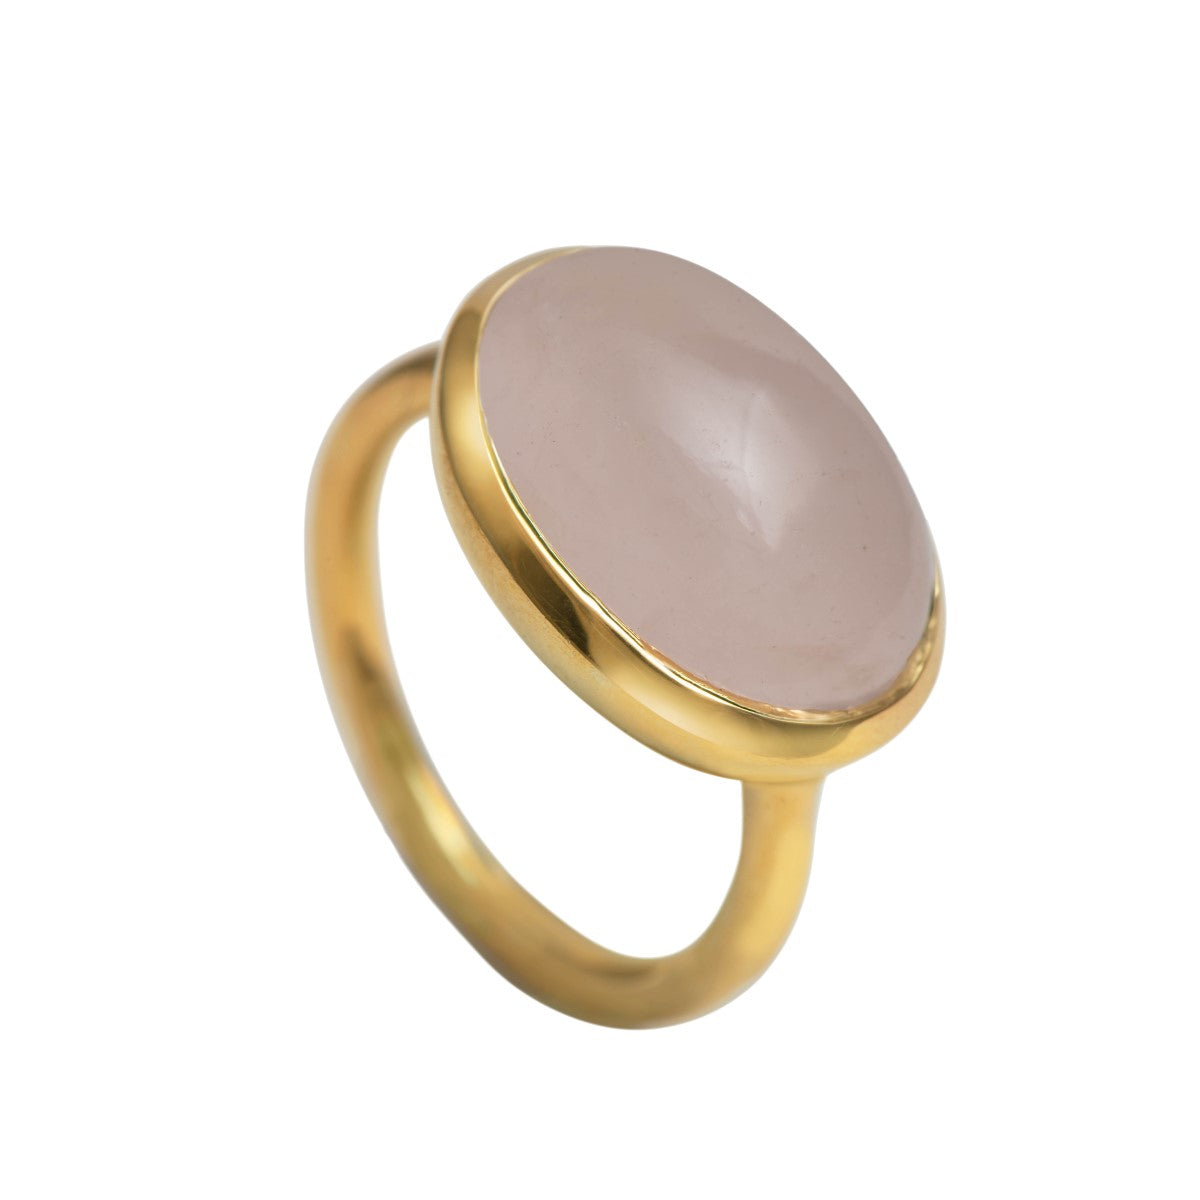 Cabochon Oval Cut Natural Gemstone Gold Plated Sterling Silver Ring - Rose Quartz